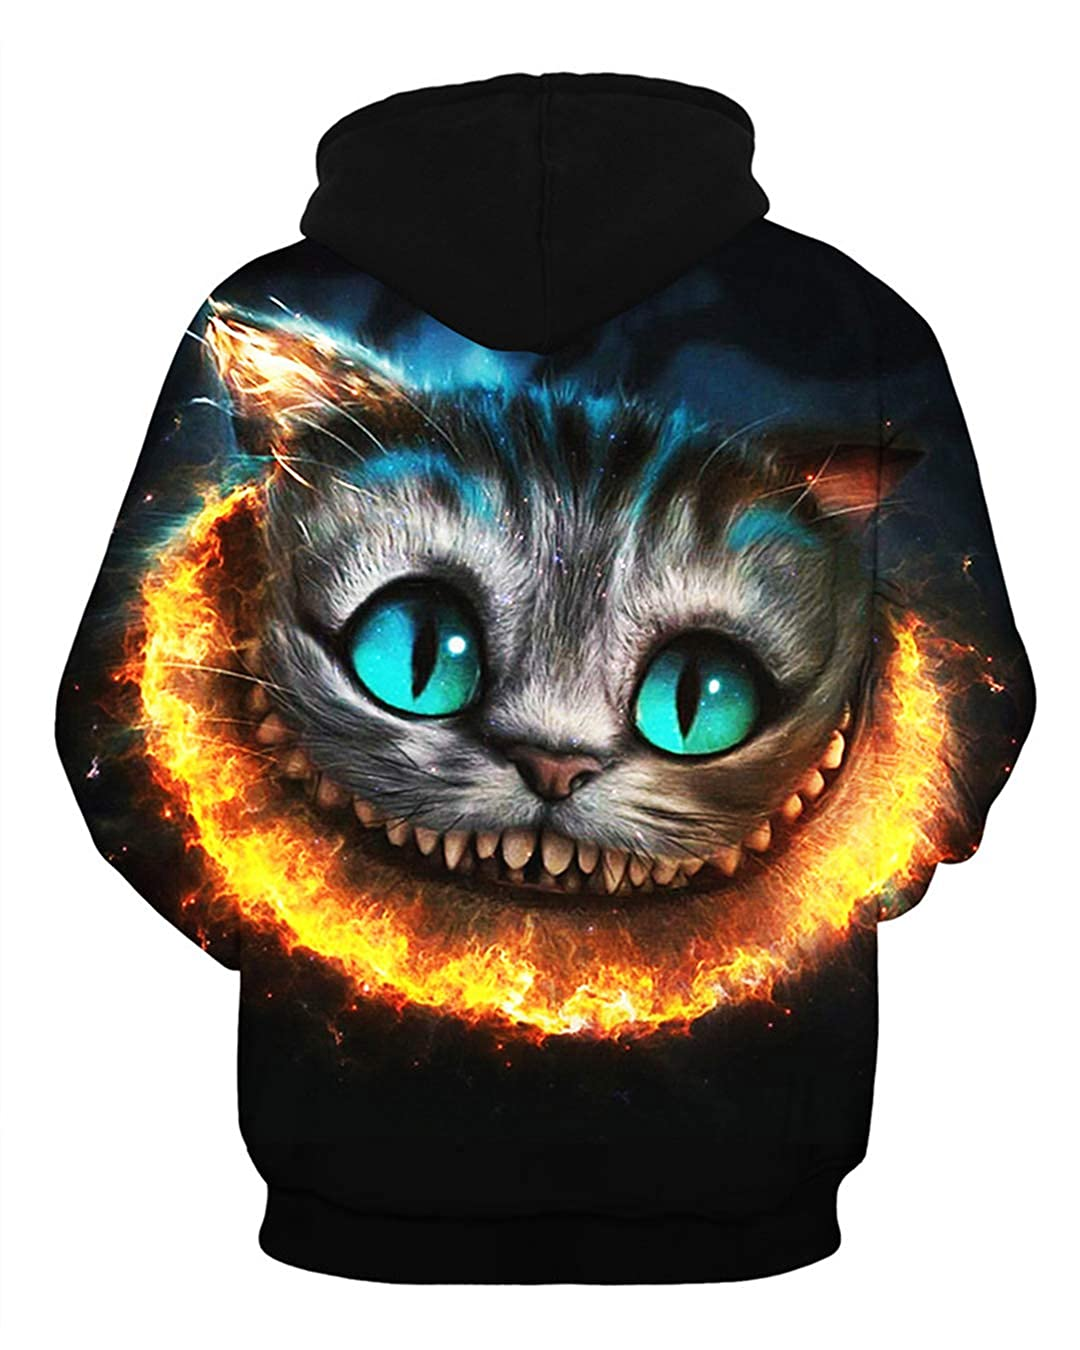 Amazon.com: 3D Printed Cat Hoodies Women Hoody Men Hooded Jumper Coats Tracksuits Unisex Pullovers Streetwear Sweatshirts Hoodie: Clothing